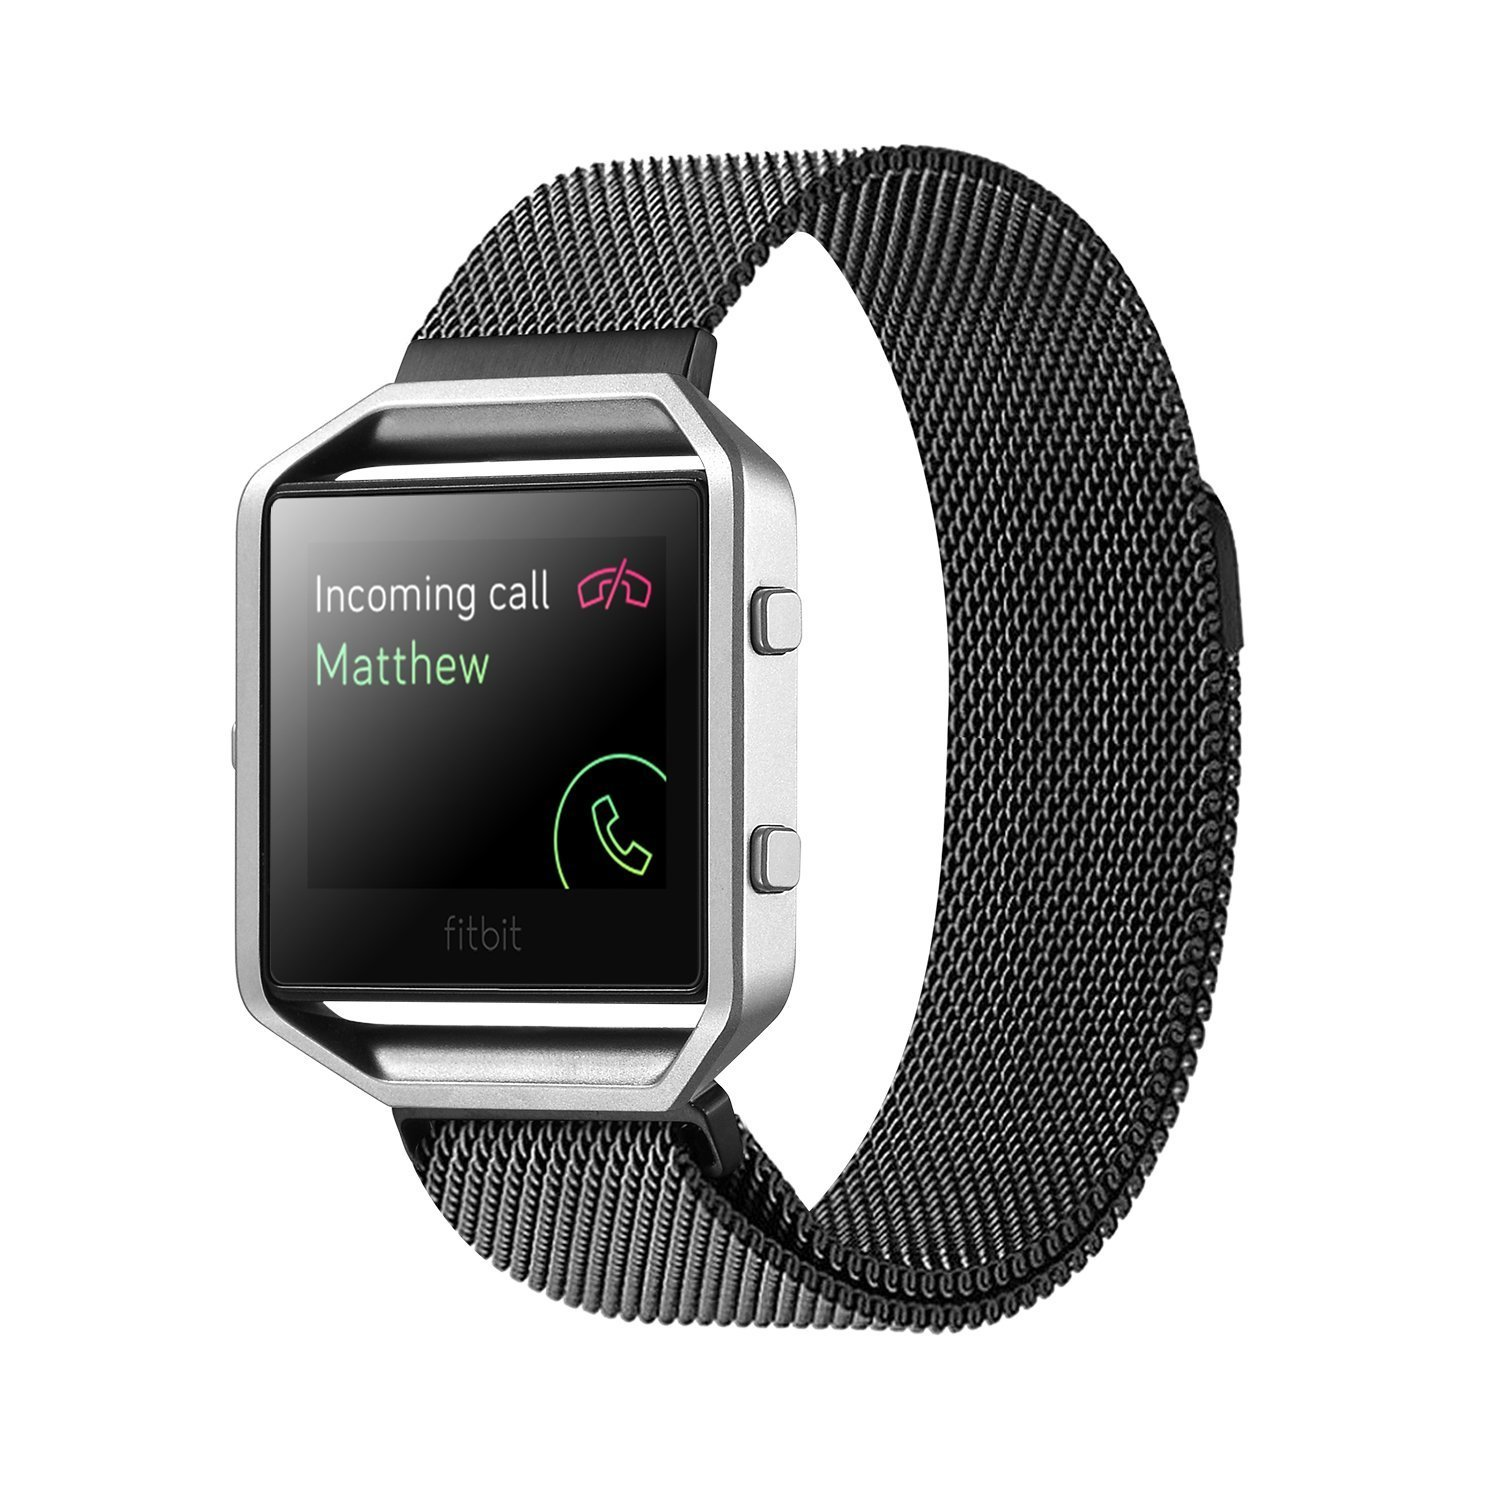 Fitbit Blaze Accessory Band Large (6.7-8.1 in),Vitech Milanese loop stailess steel Bracelet Strap for Fitbit Blaze Smart Fitness Watch, Black, Silver, Large with unique Magnet lock (Black)